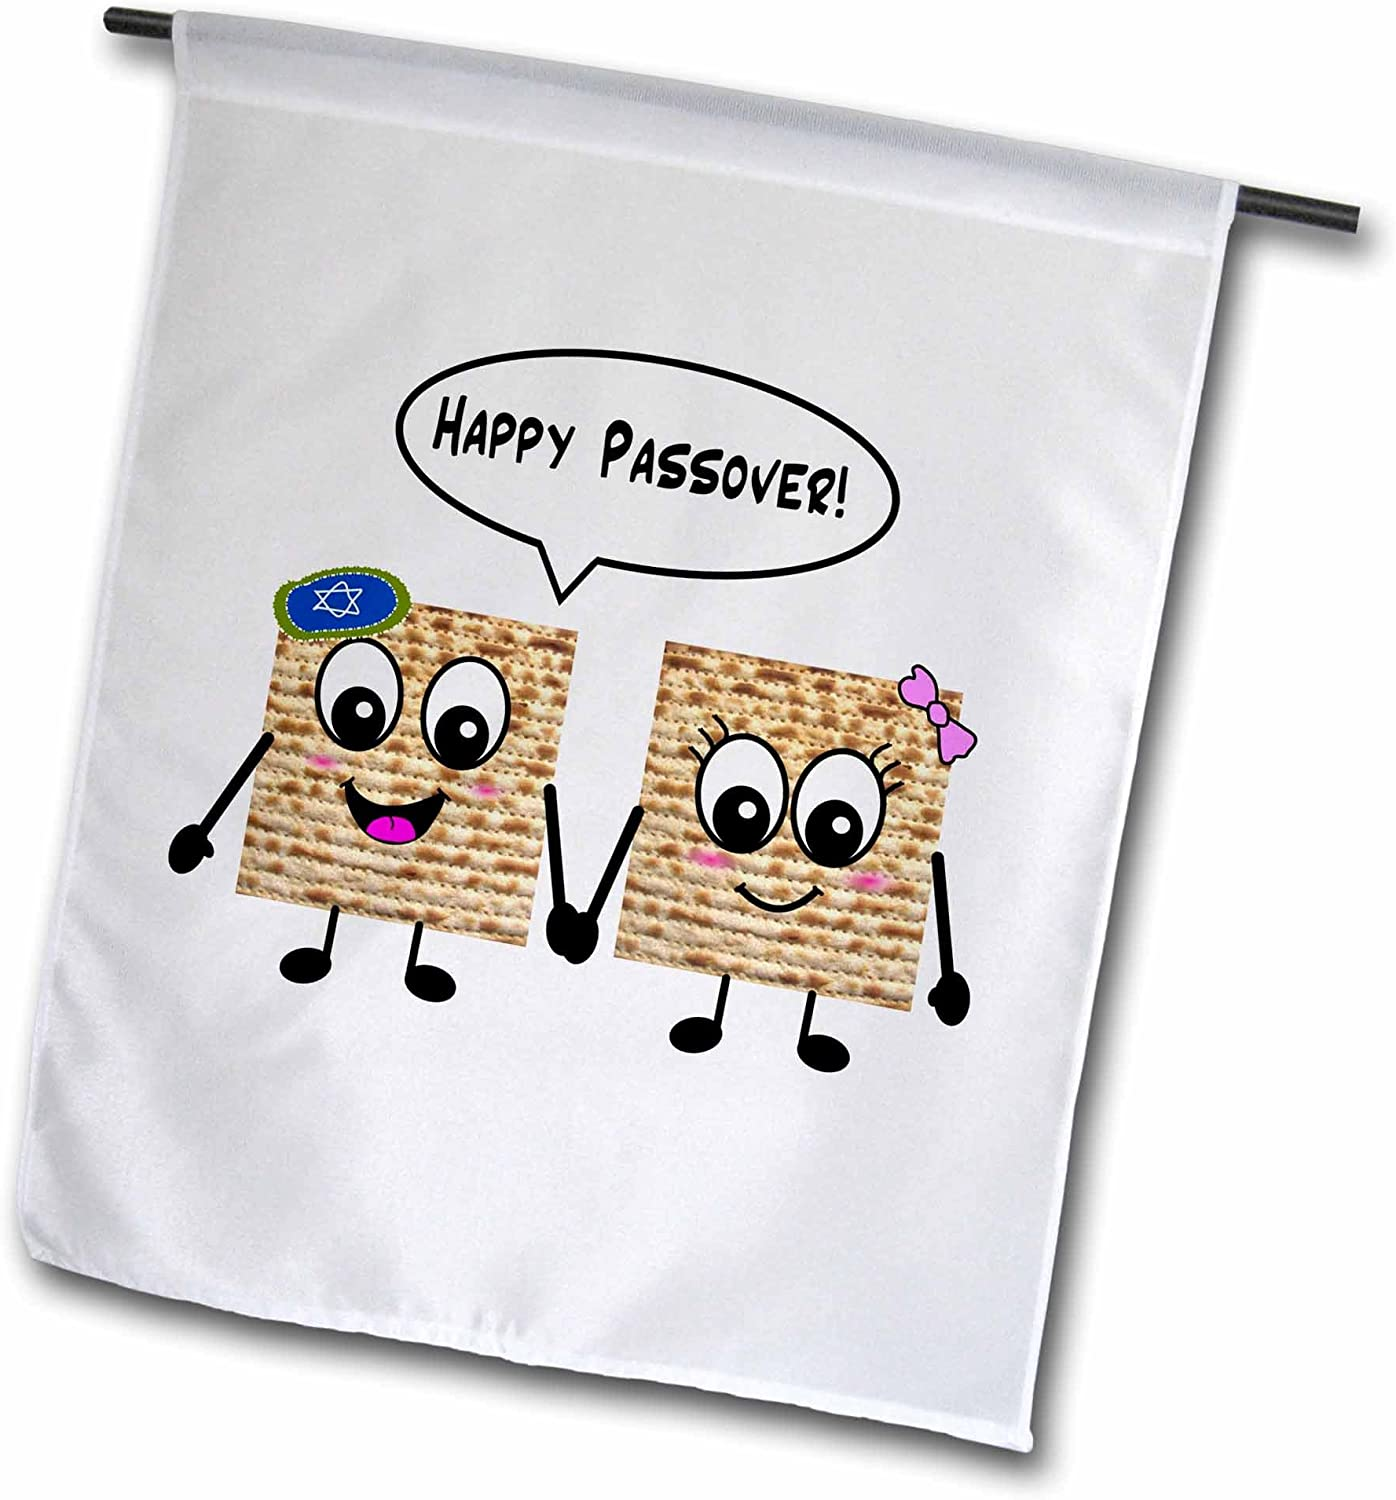 3dRose fl_76636_1 Happy Passover Cute Smiley Matzah Cartoon Happy Smiling Matzot for Pesach Jewish Holiday Gifts Garden Flag, 12 by 18-Inch